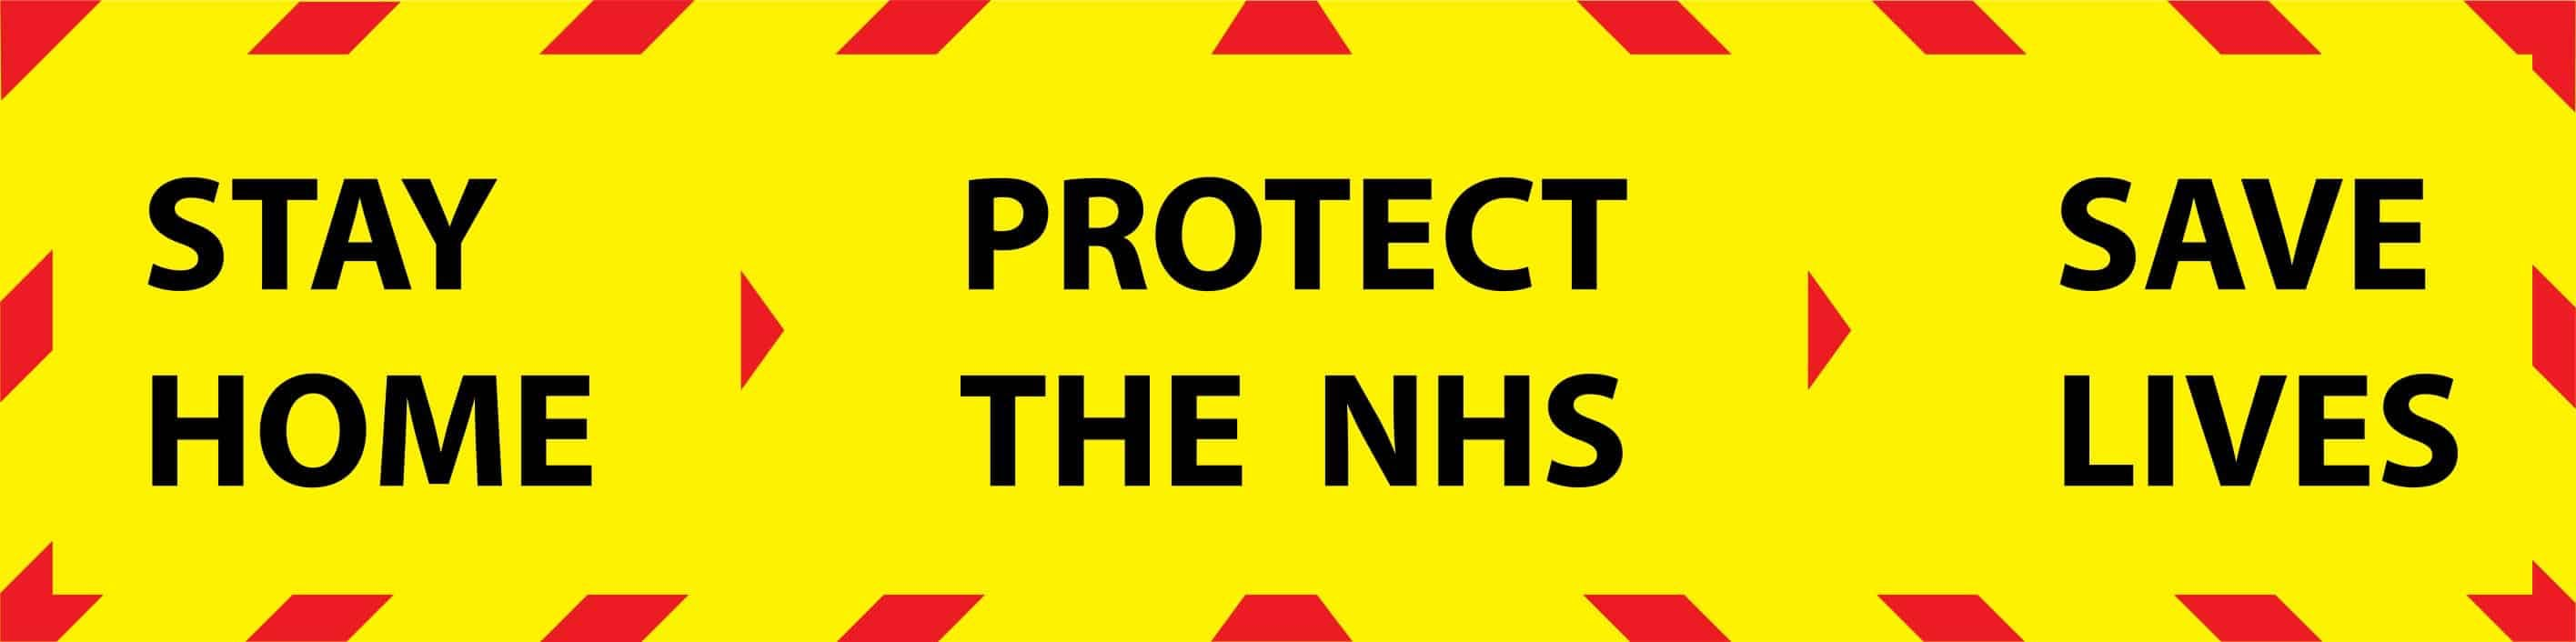 Protect the NHS message